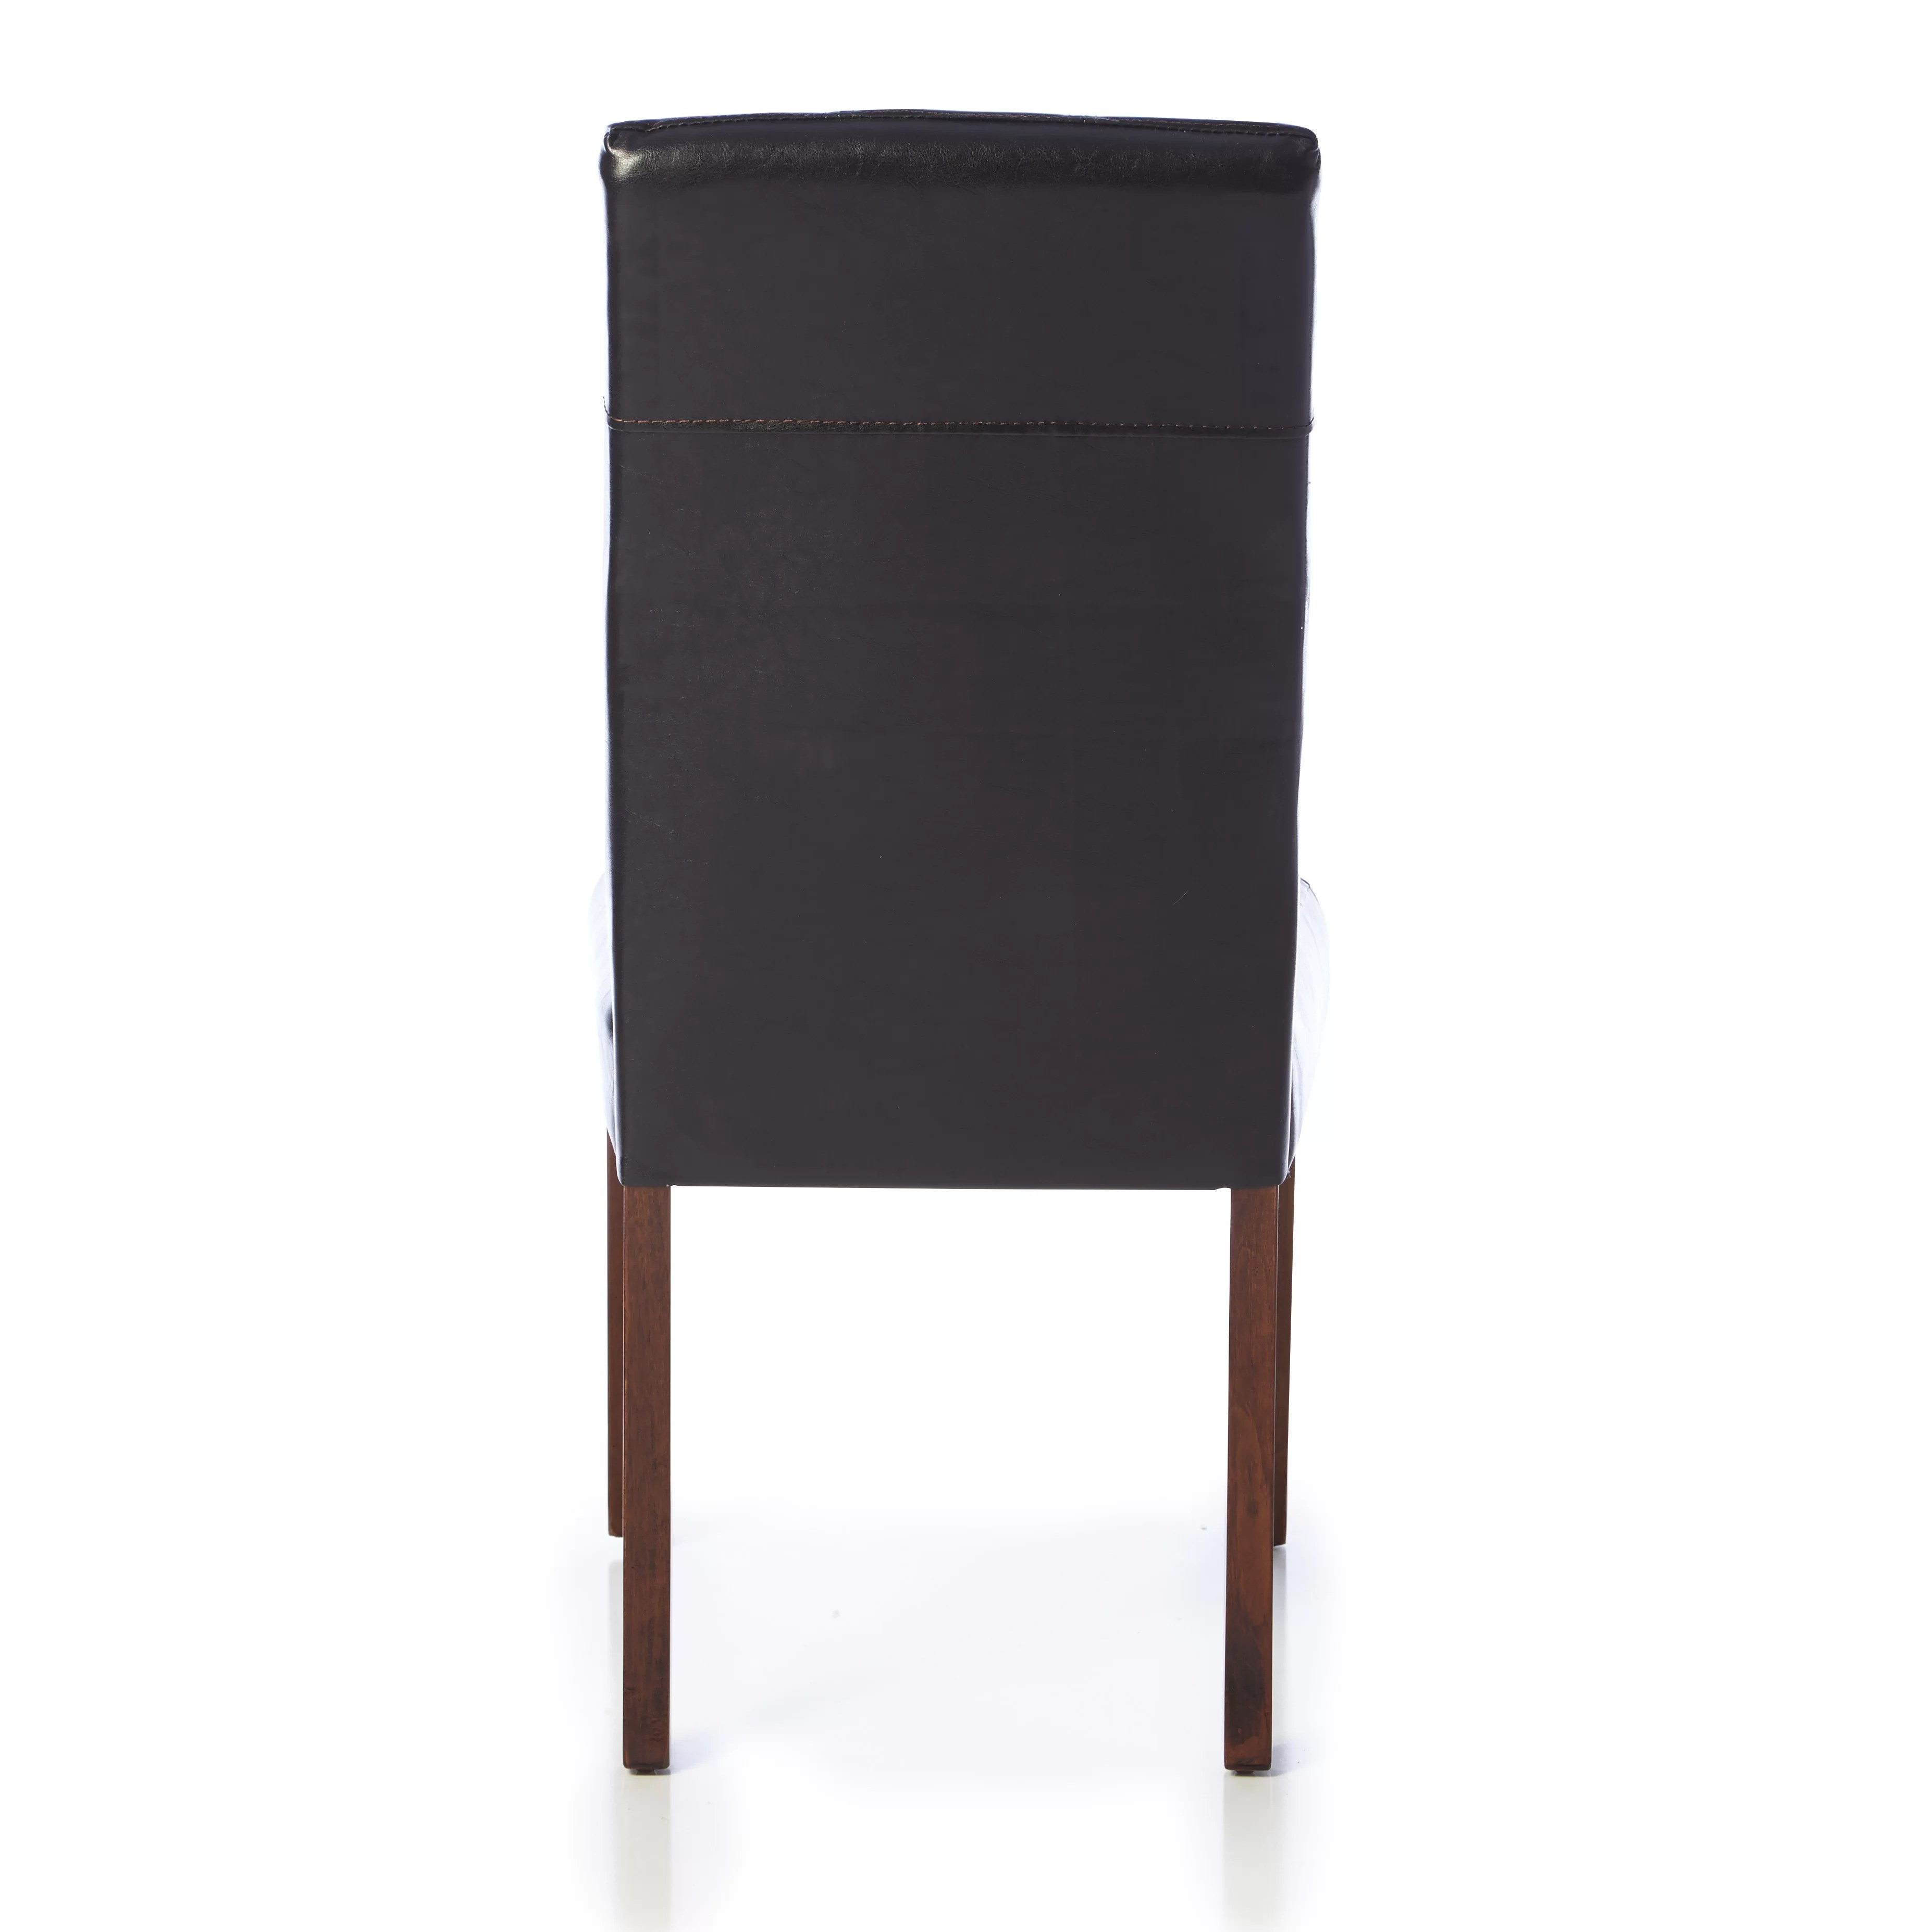 chair for writing desk gumtree covers sale in durban andover mills oren and reviews wayfair